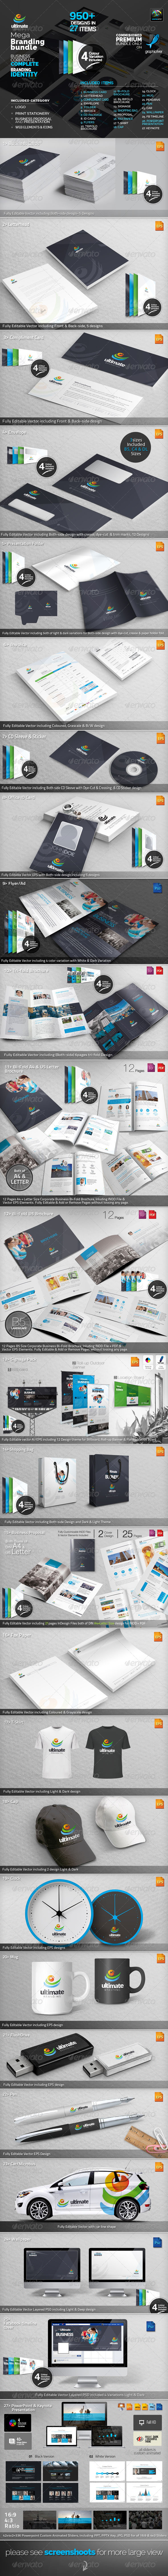 GraphicRiver Ultimate Mega Branding Pack 6552079